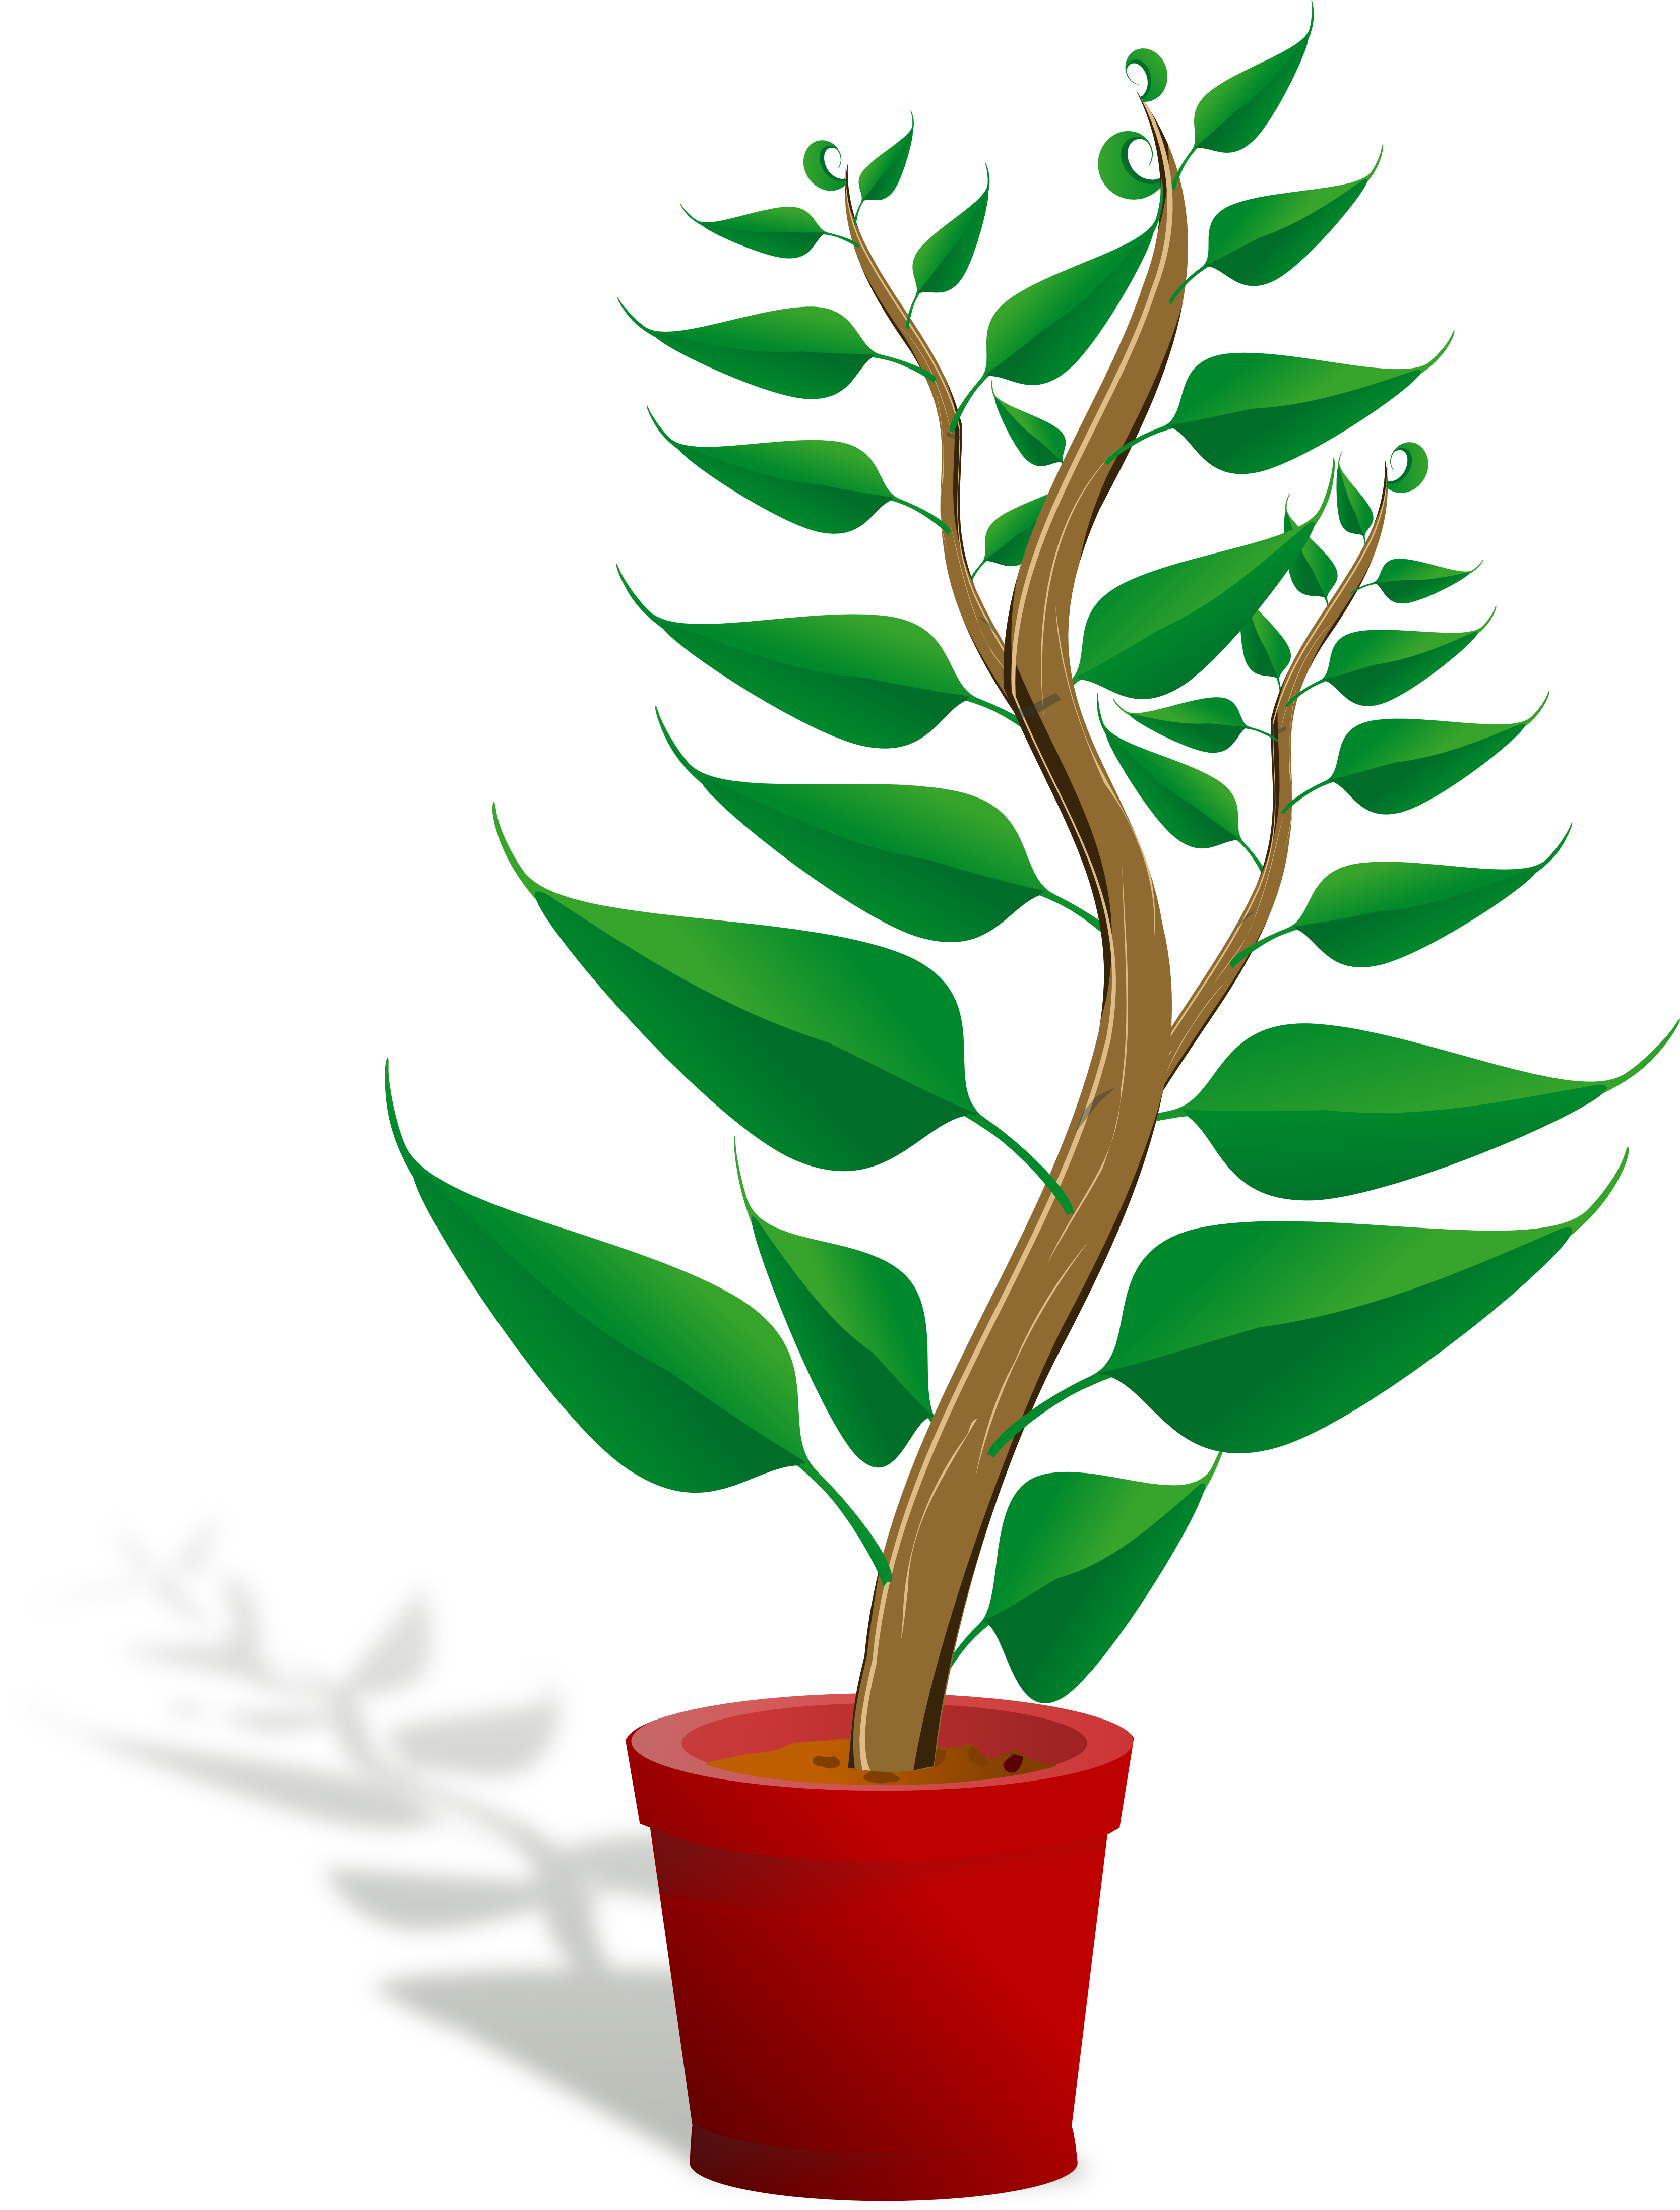 Plant clipart #7, Download drawings